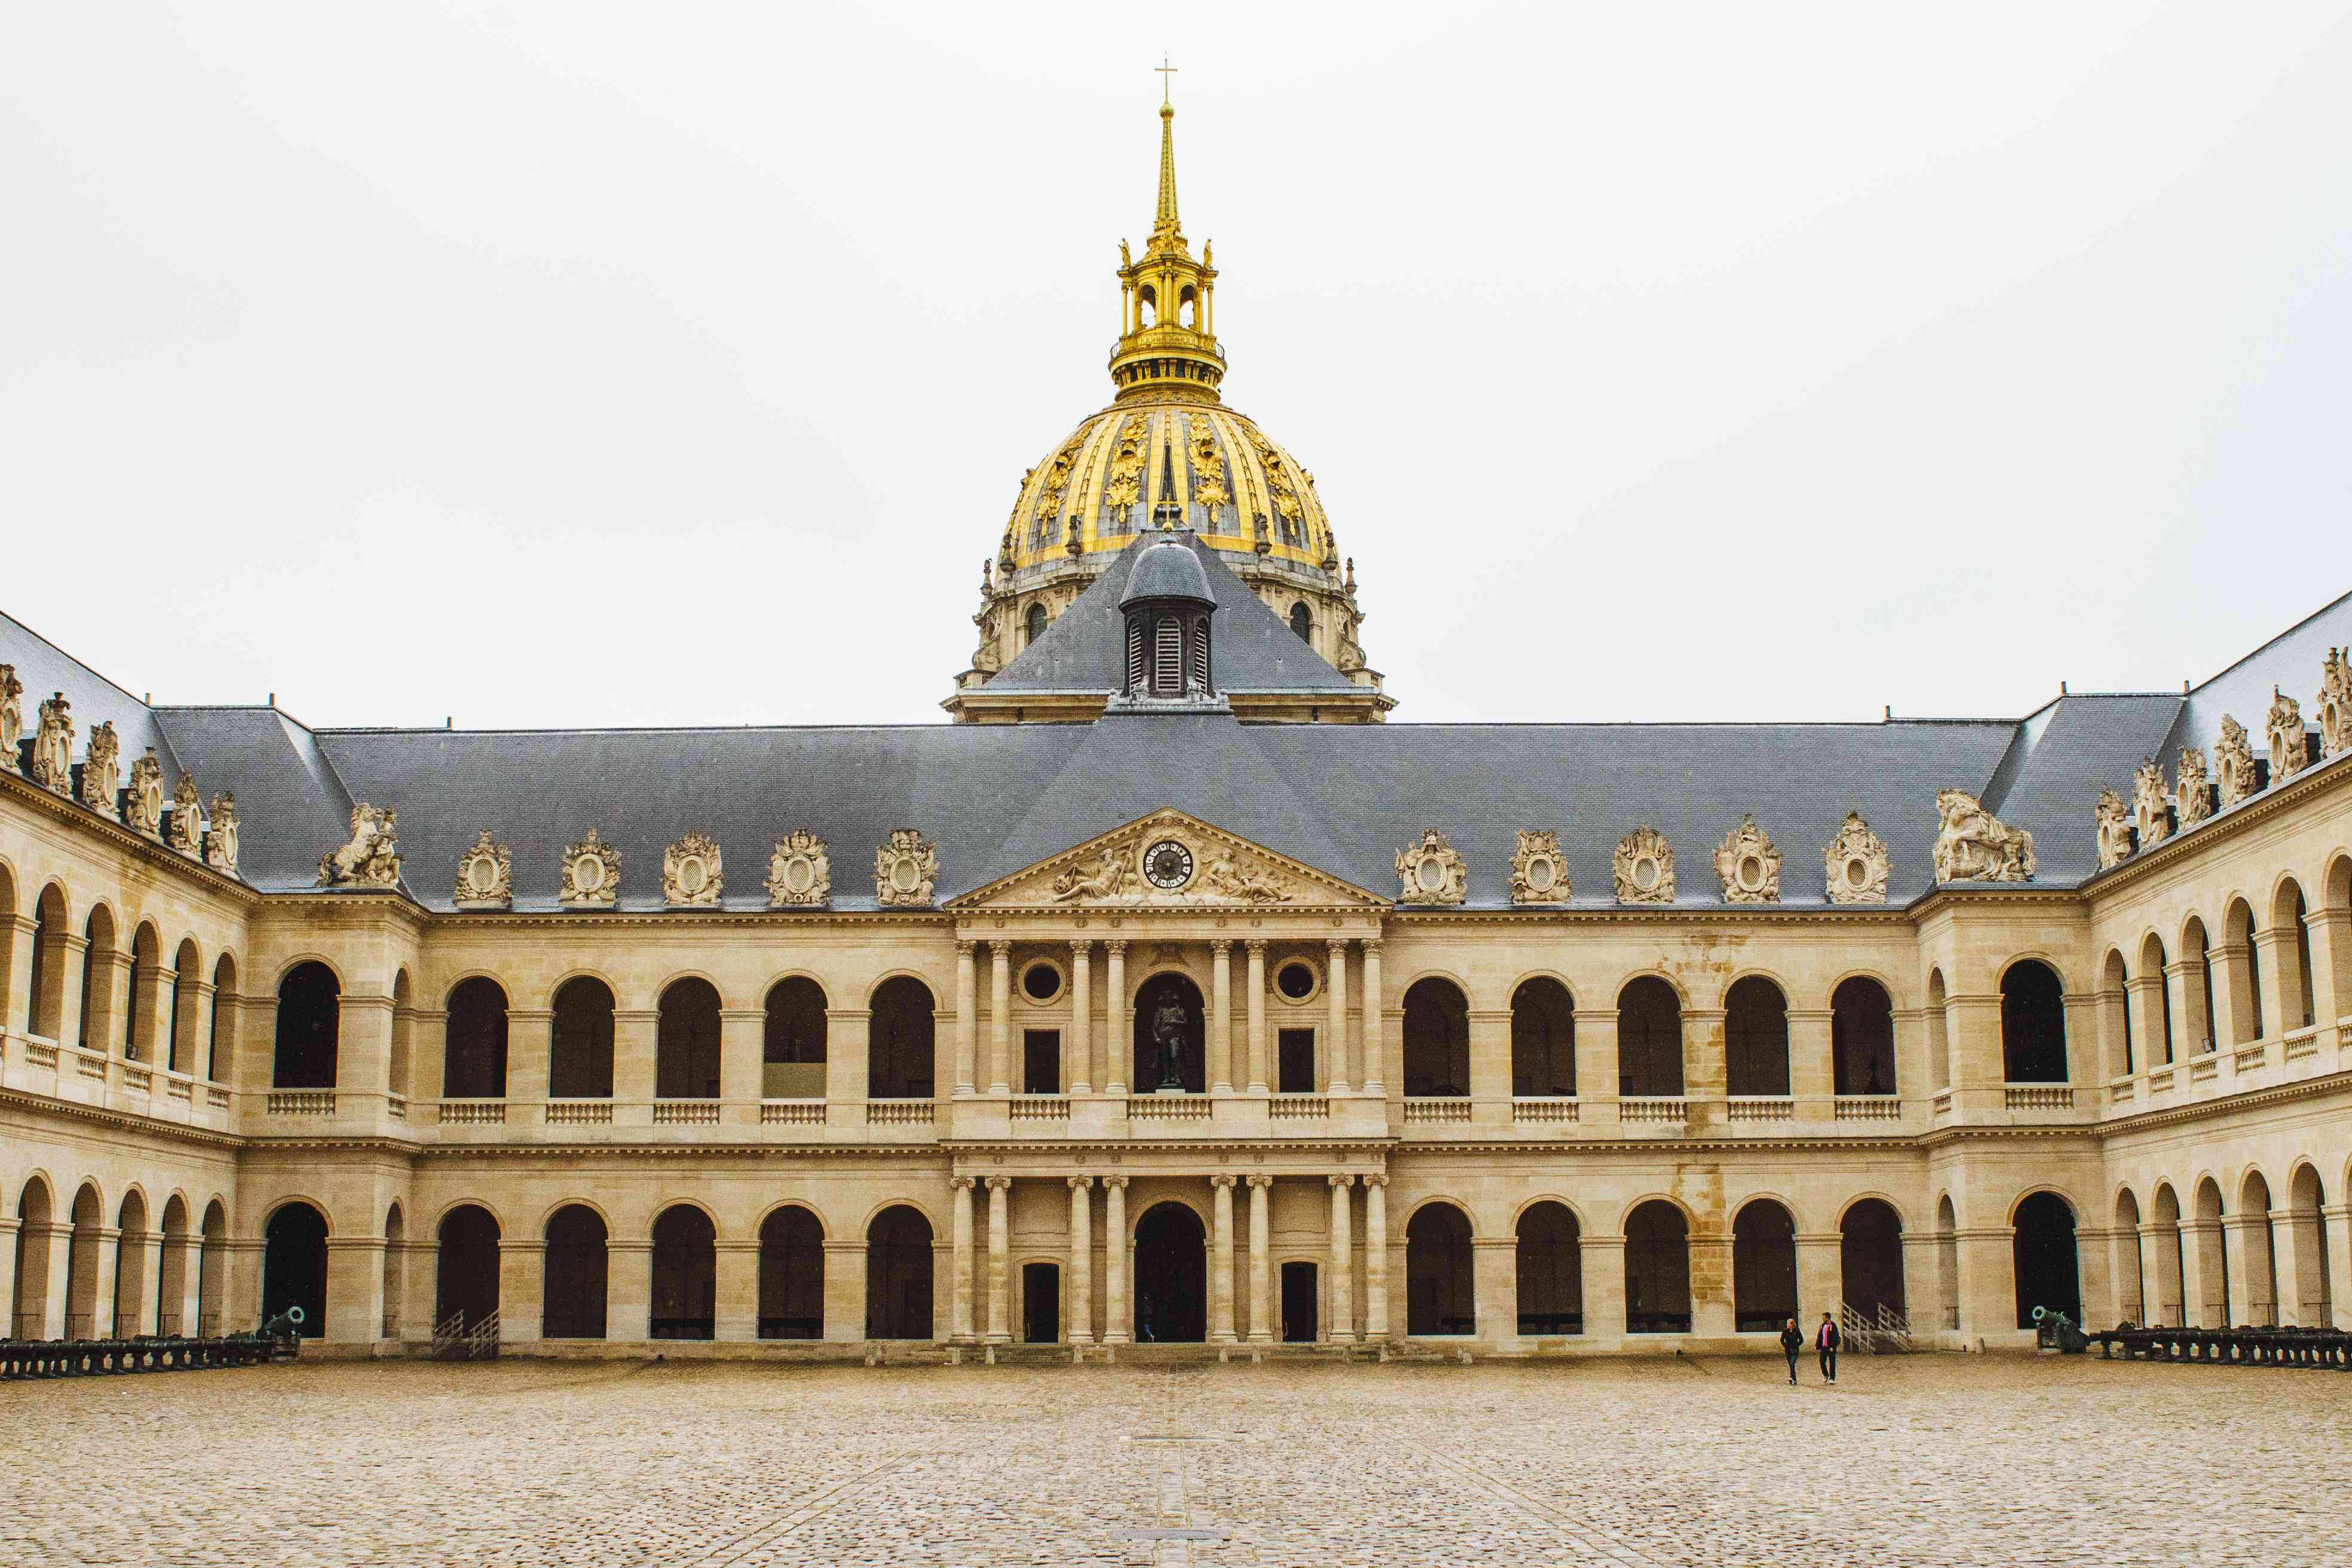 Courtyard with Les Invalides